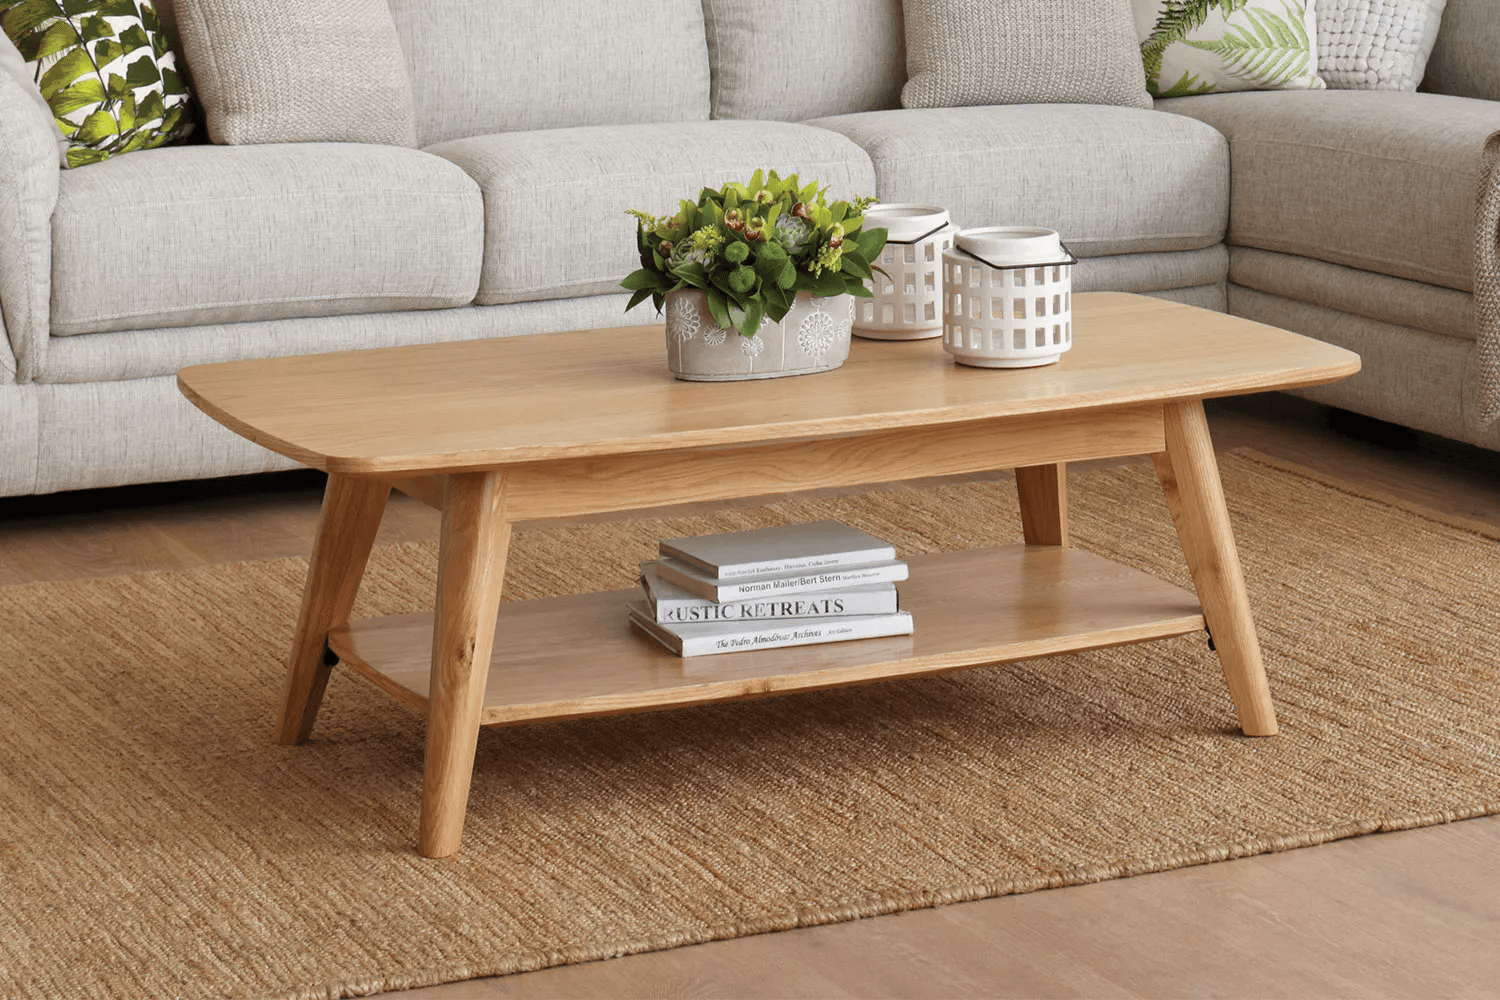 Small living room design with Oslo Coffee Table